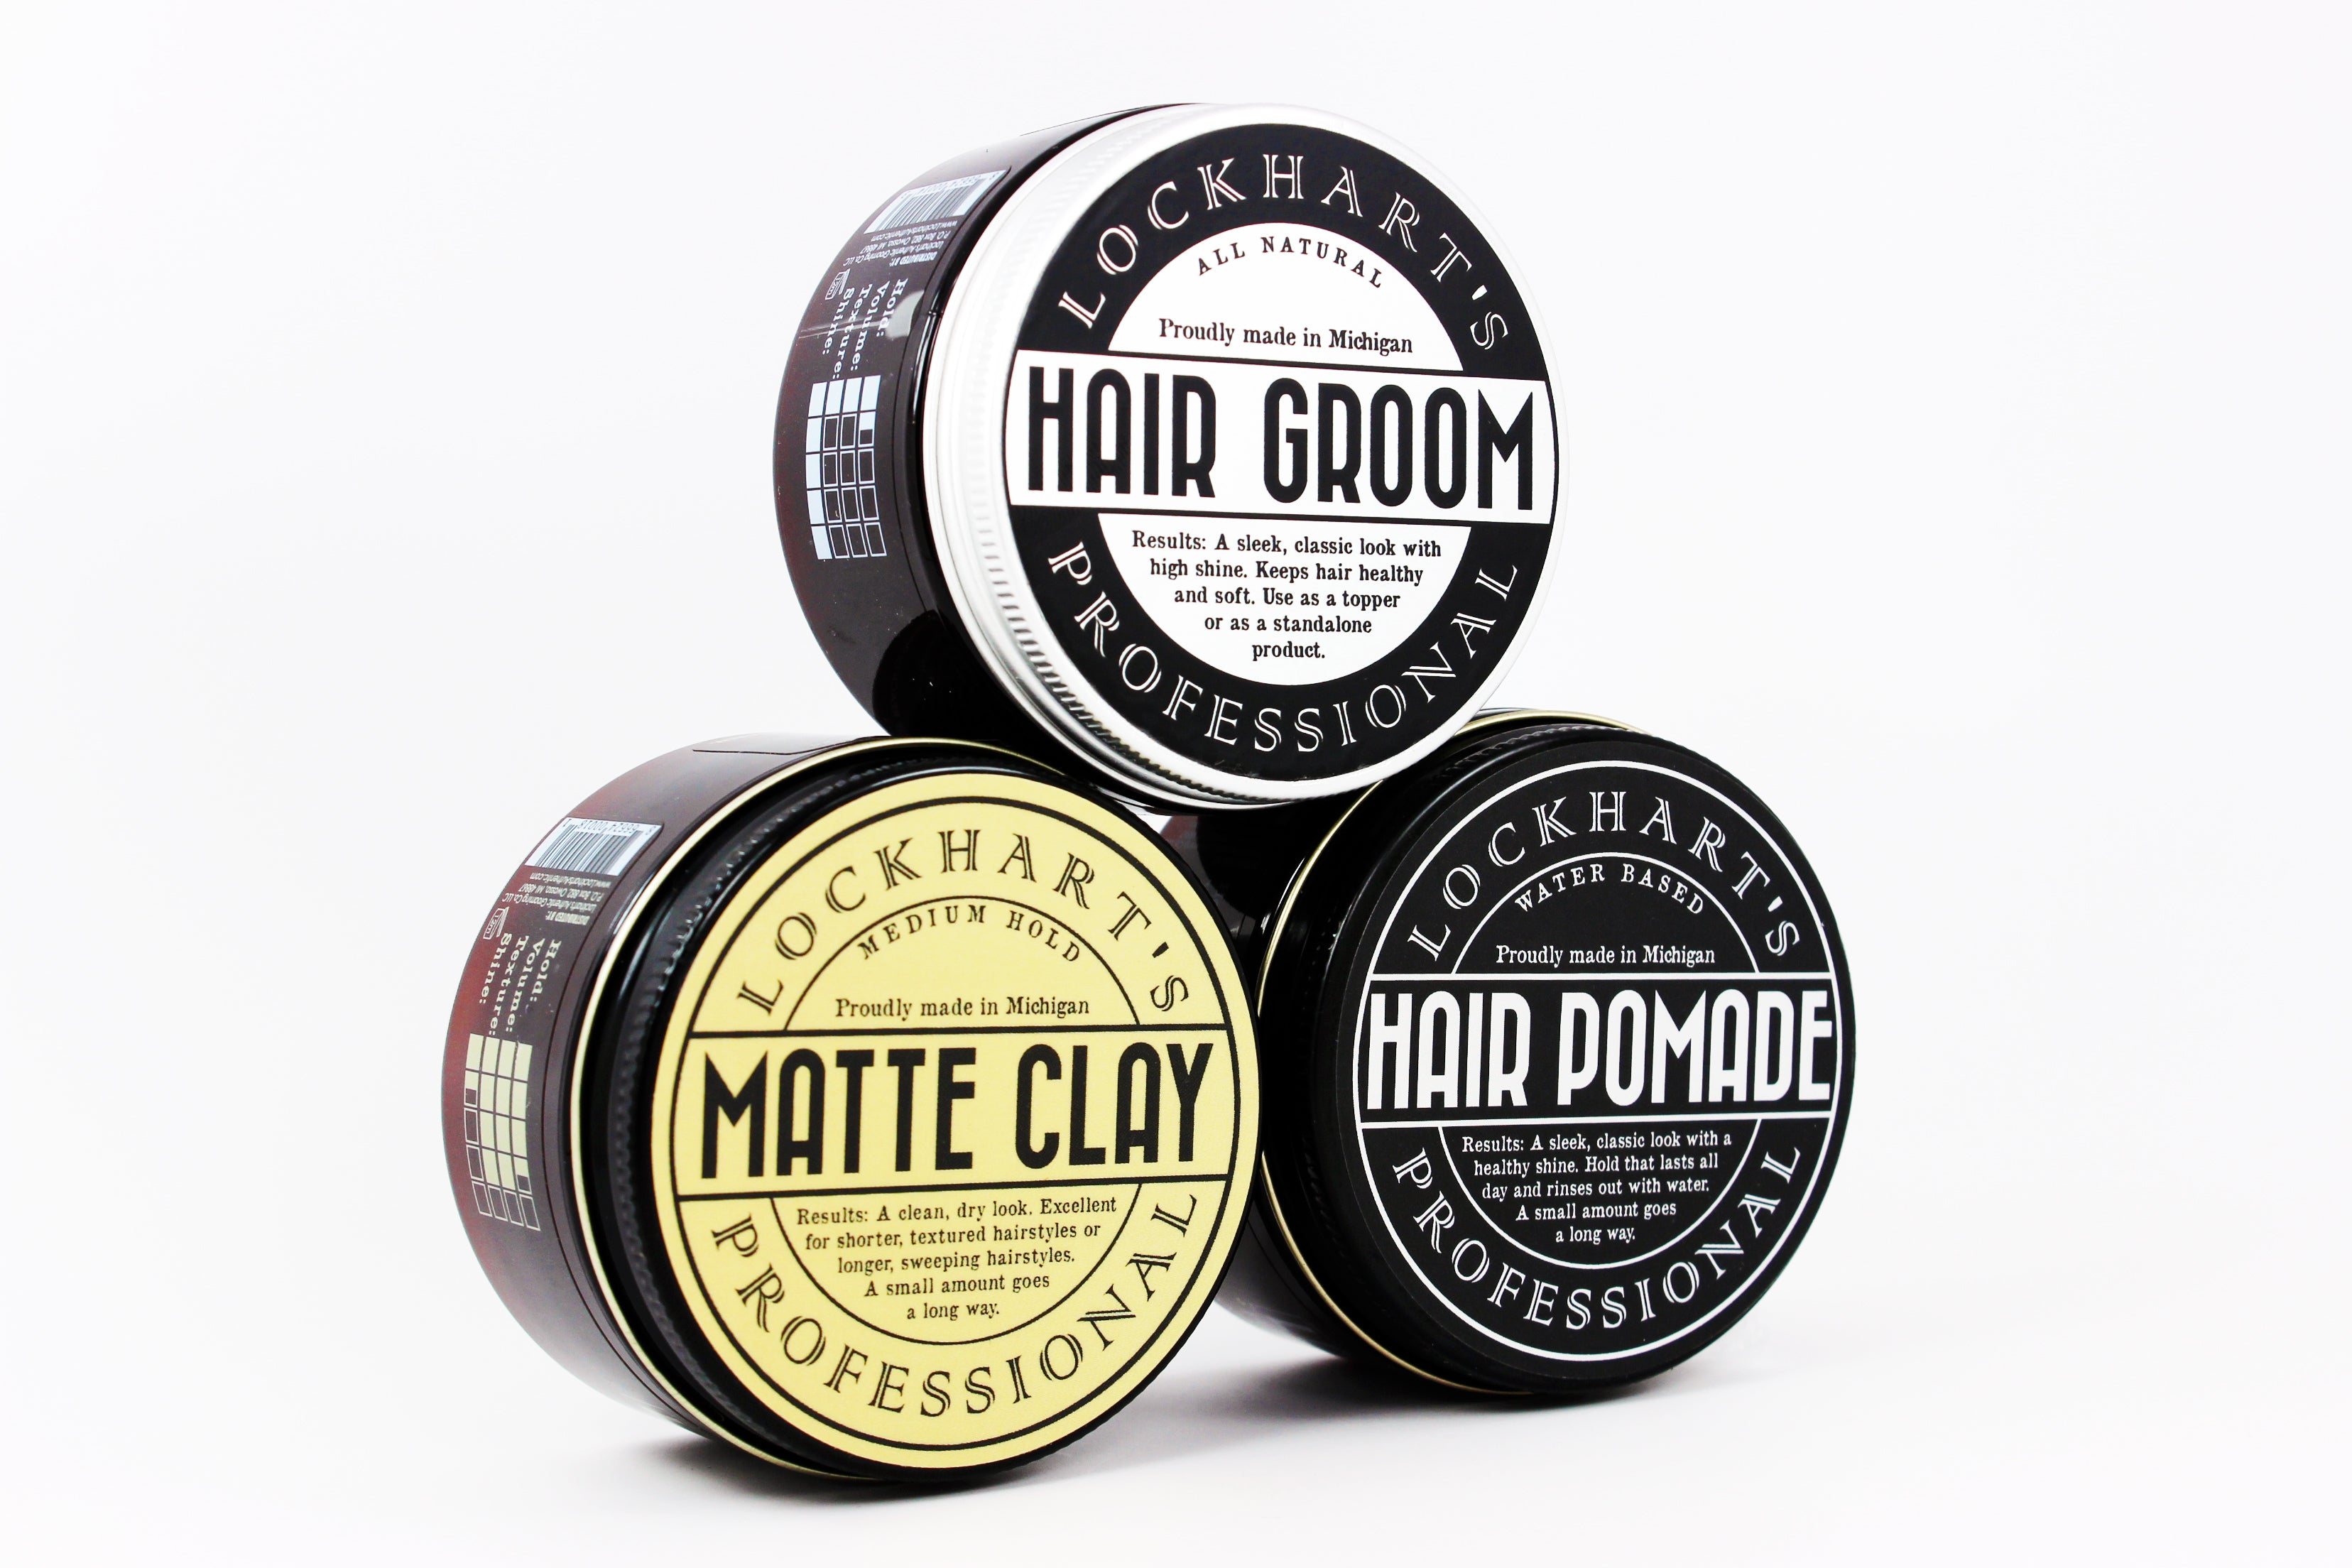 Lockhart's Men's Grooming Products